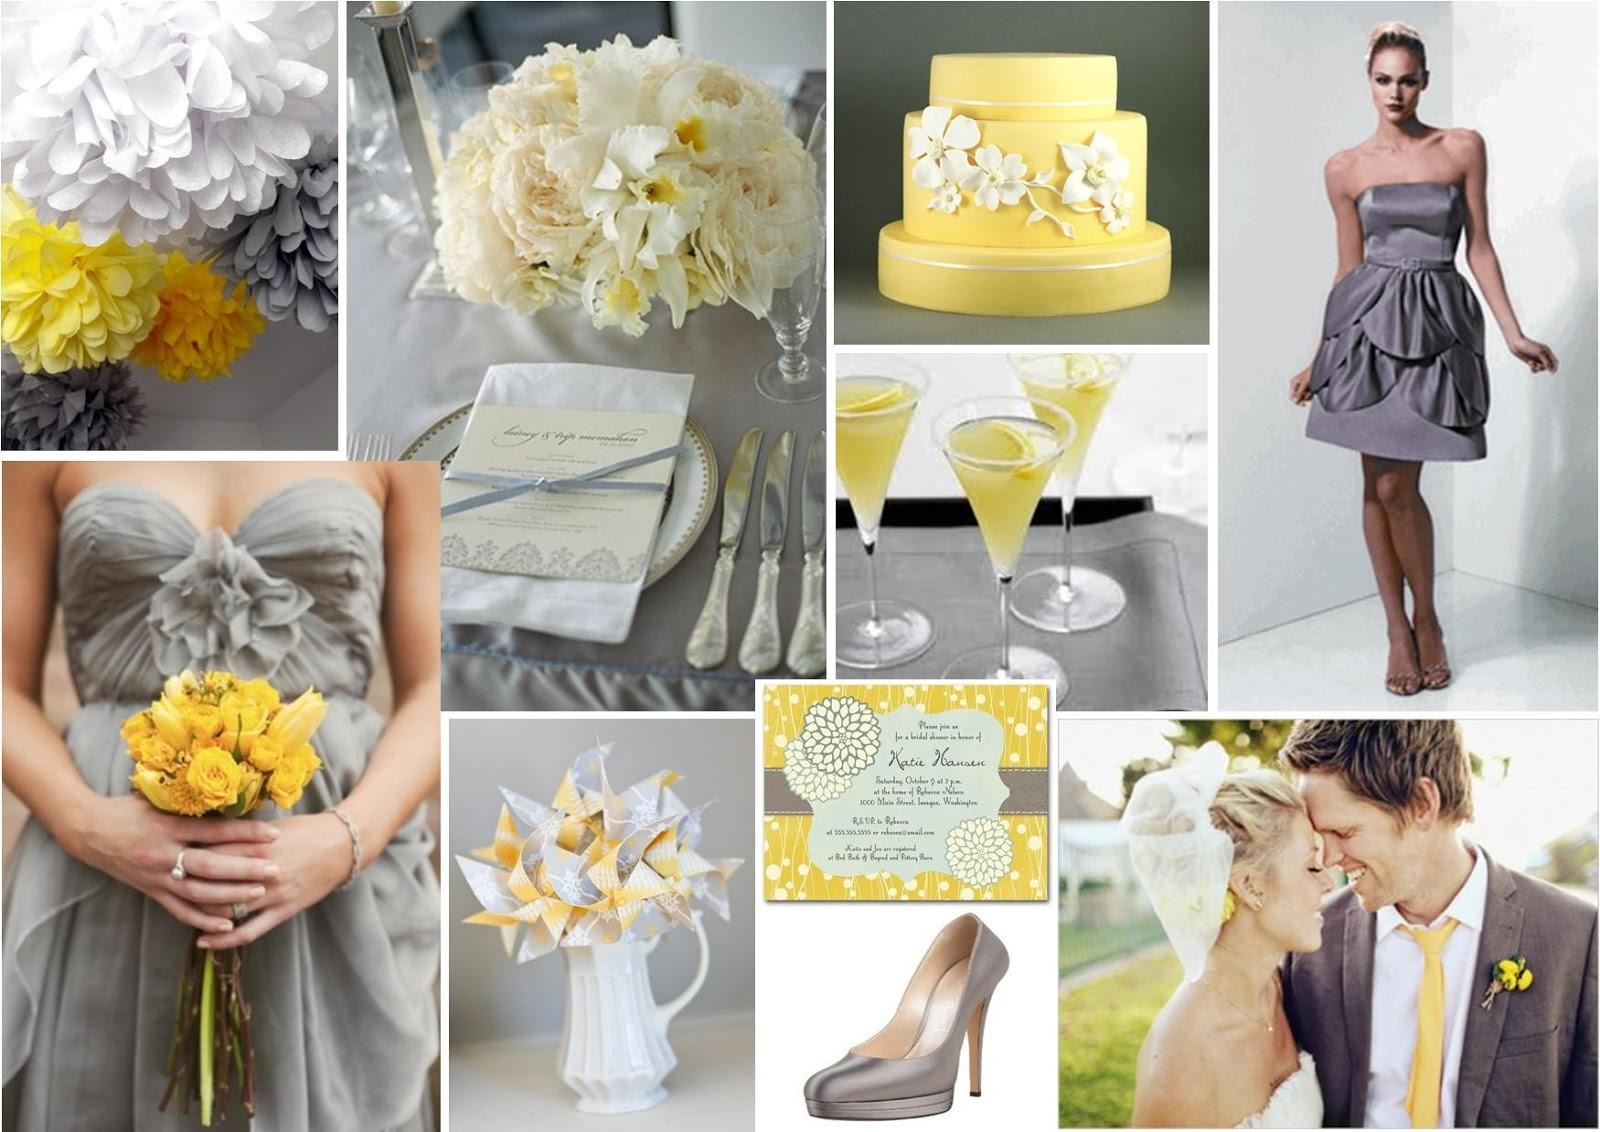 Suzanne Bridal Blog Spring 2013 Wedding Color Trends